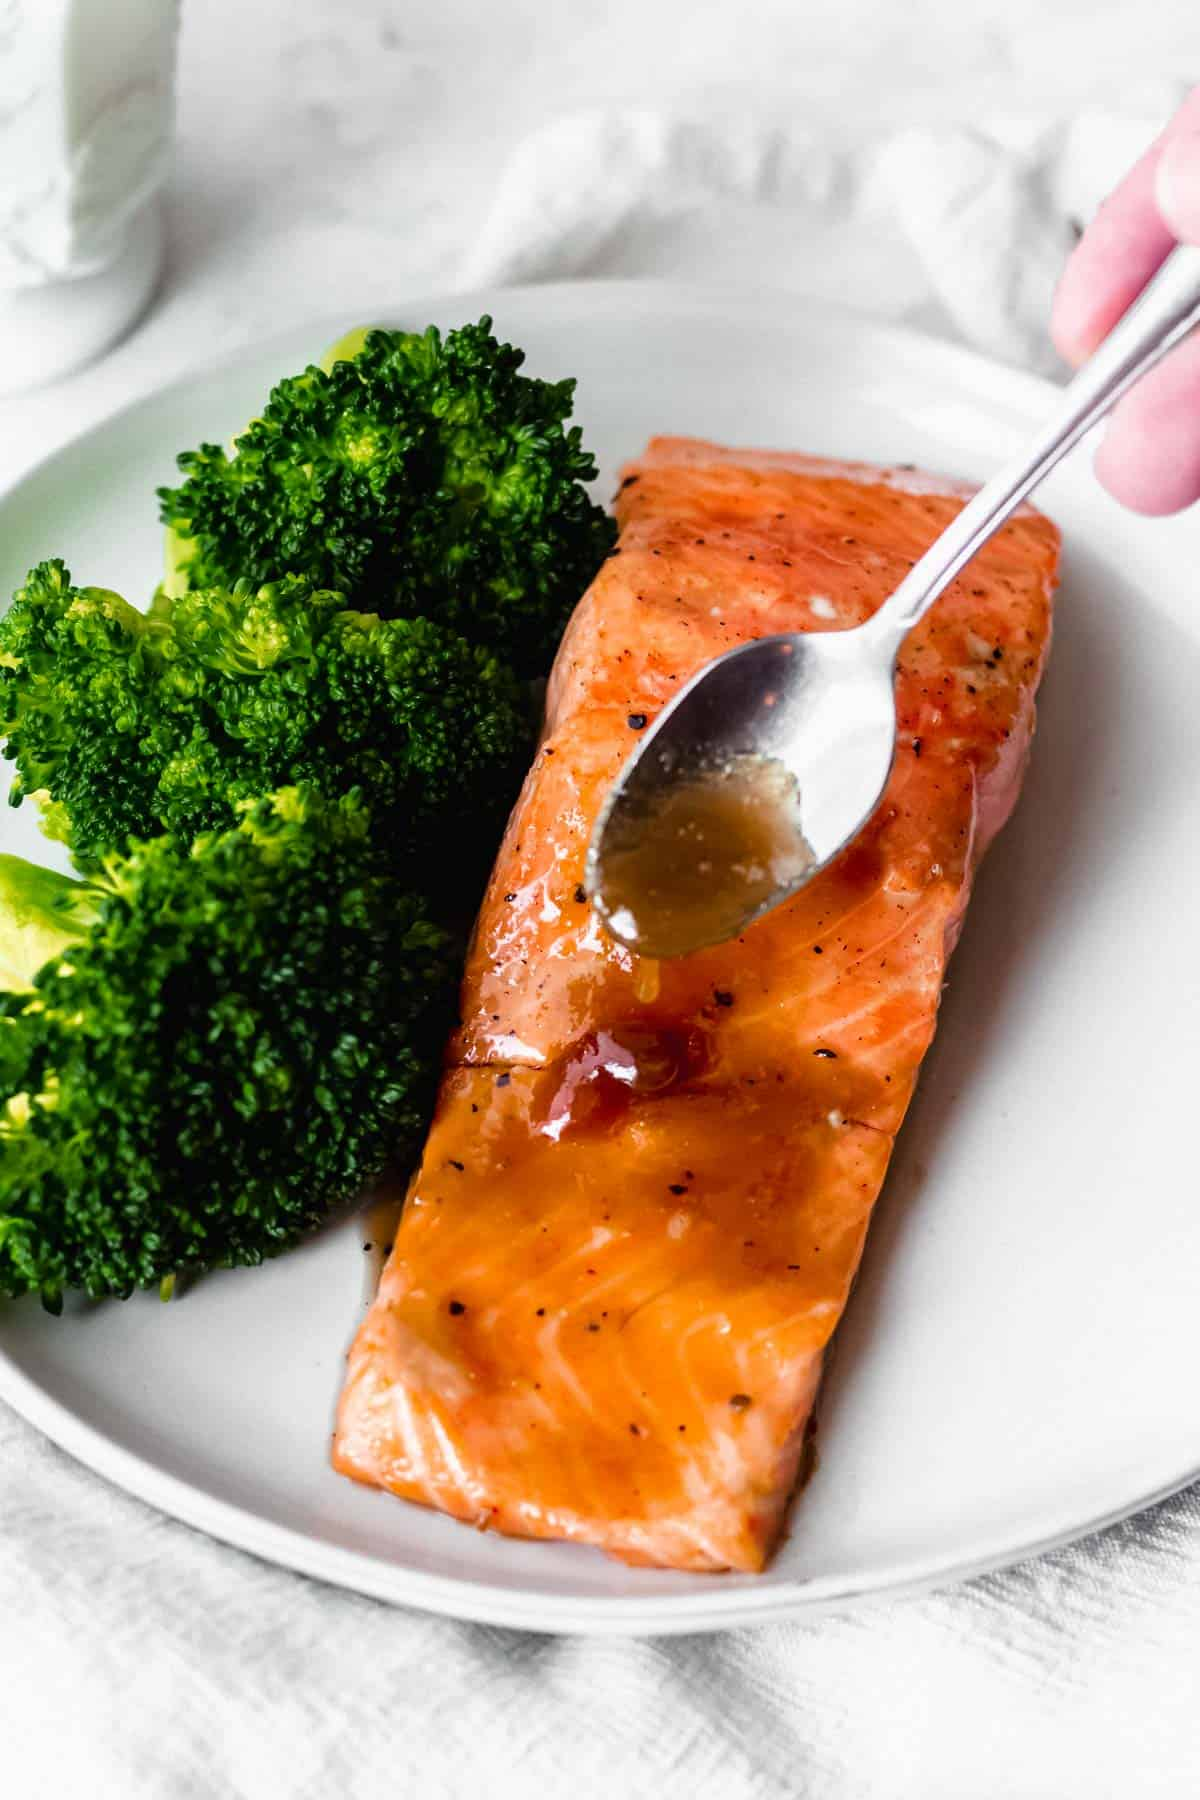 A filet of salmon with maple bourbon glaze being spooned over it on a white plate with broccoli